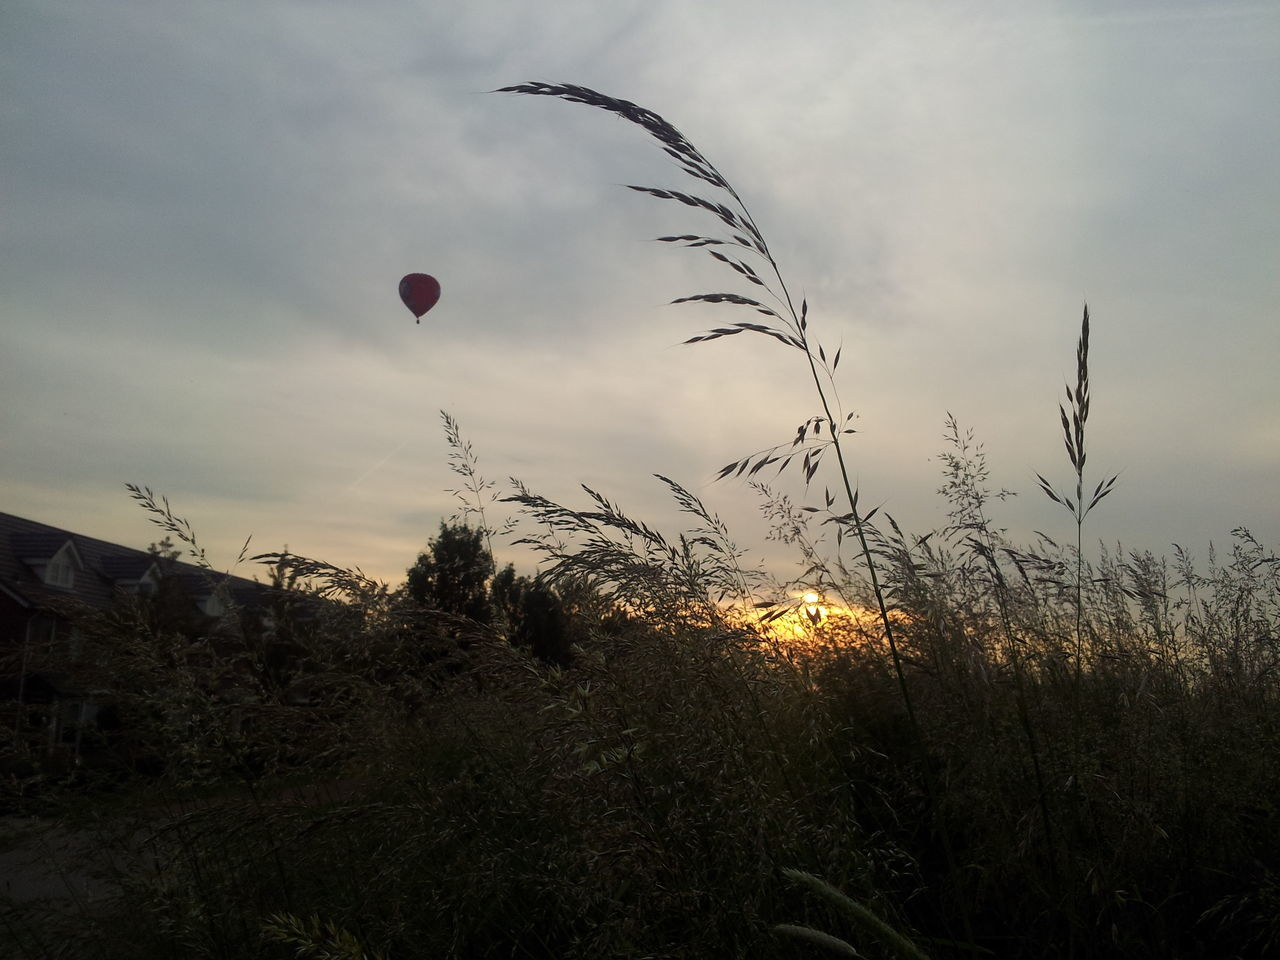 Bare Tree Beauty In Nature Day Hot Air Balloon Landscape Nature No People Outdoors Sky Sunset Tree